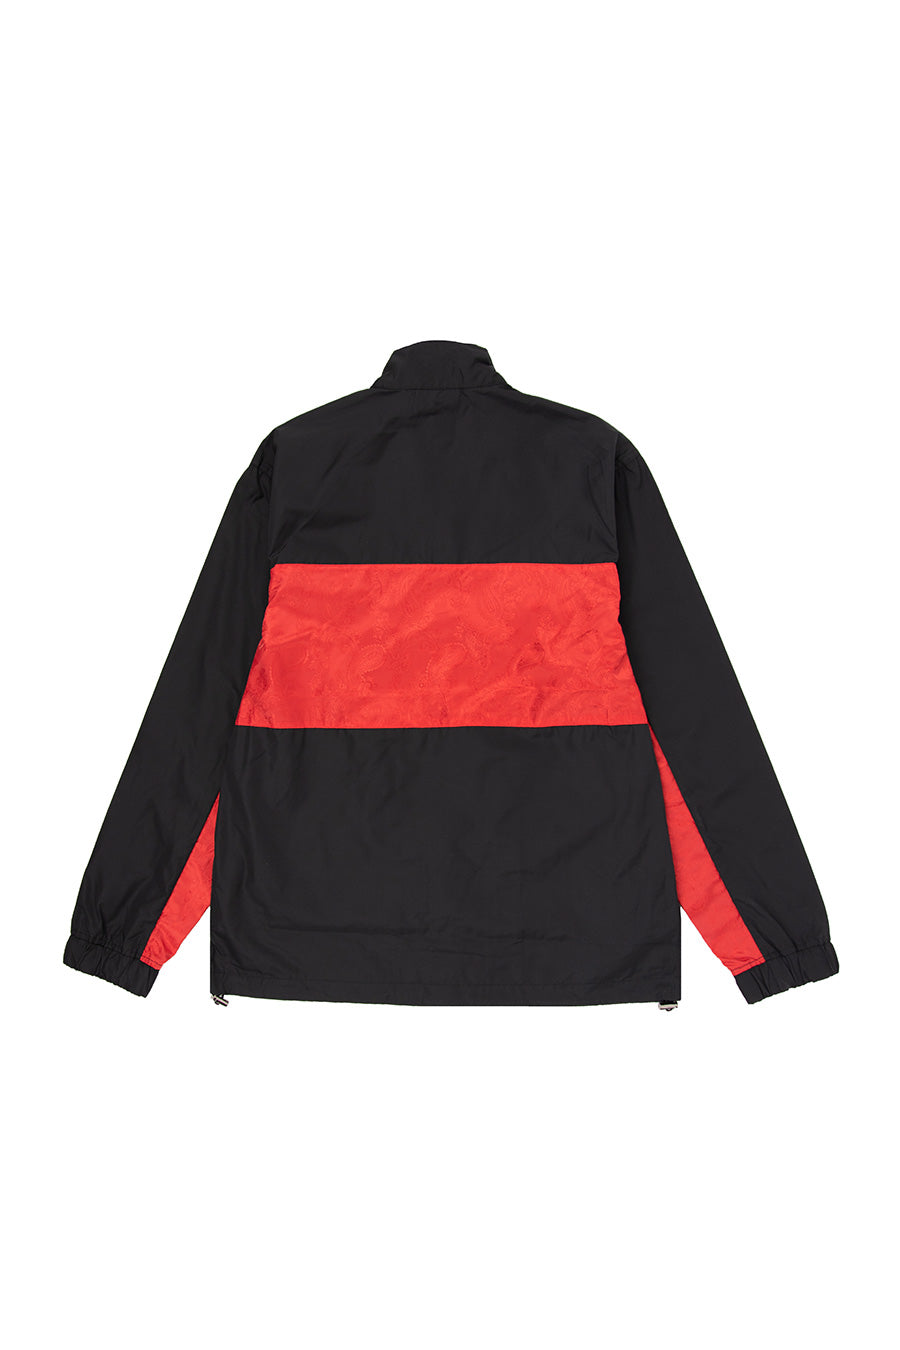 Pleasures - Black Blast Track Jacket | 1032 SPACE